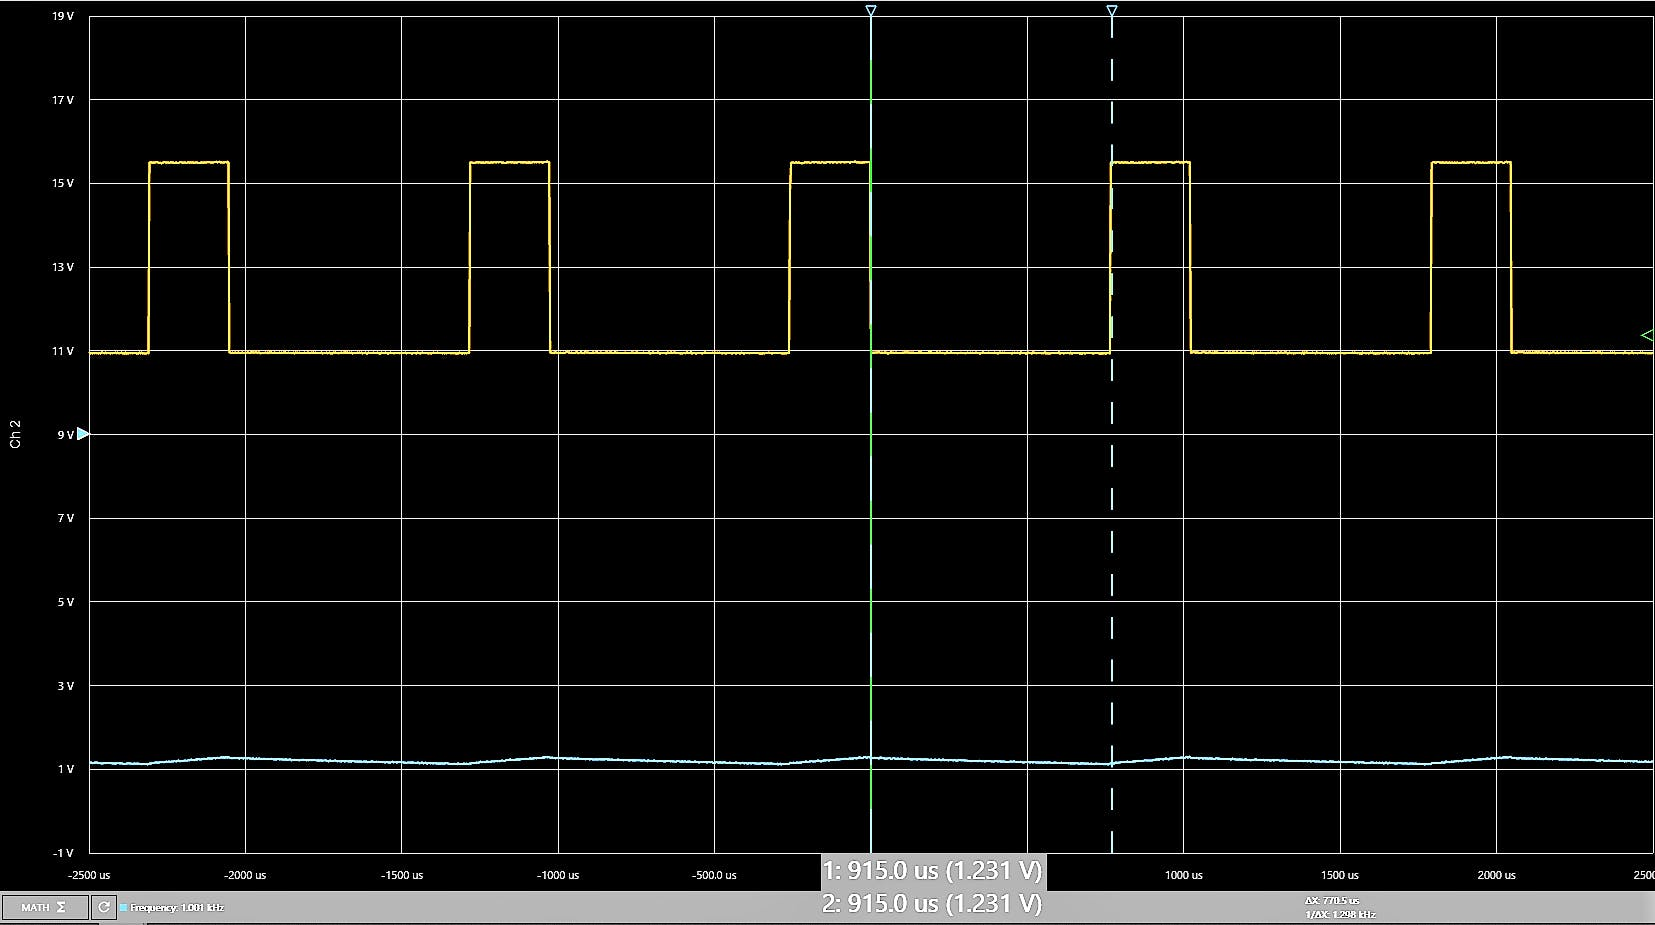 A 25% duty cycle results in an approximately 1.25V analog signal (25% of 5V).